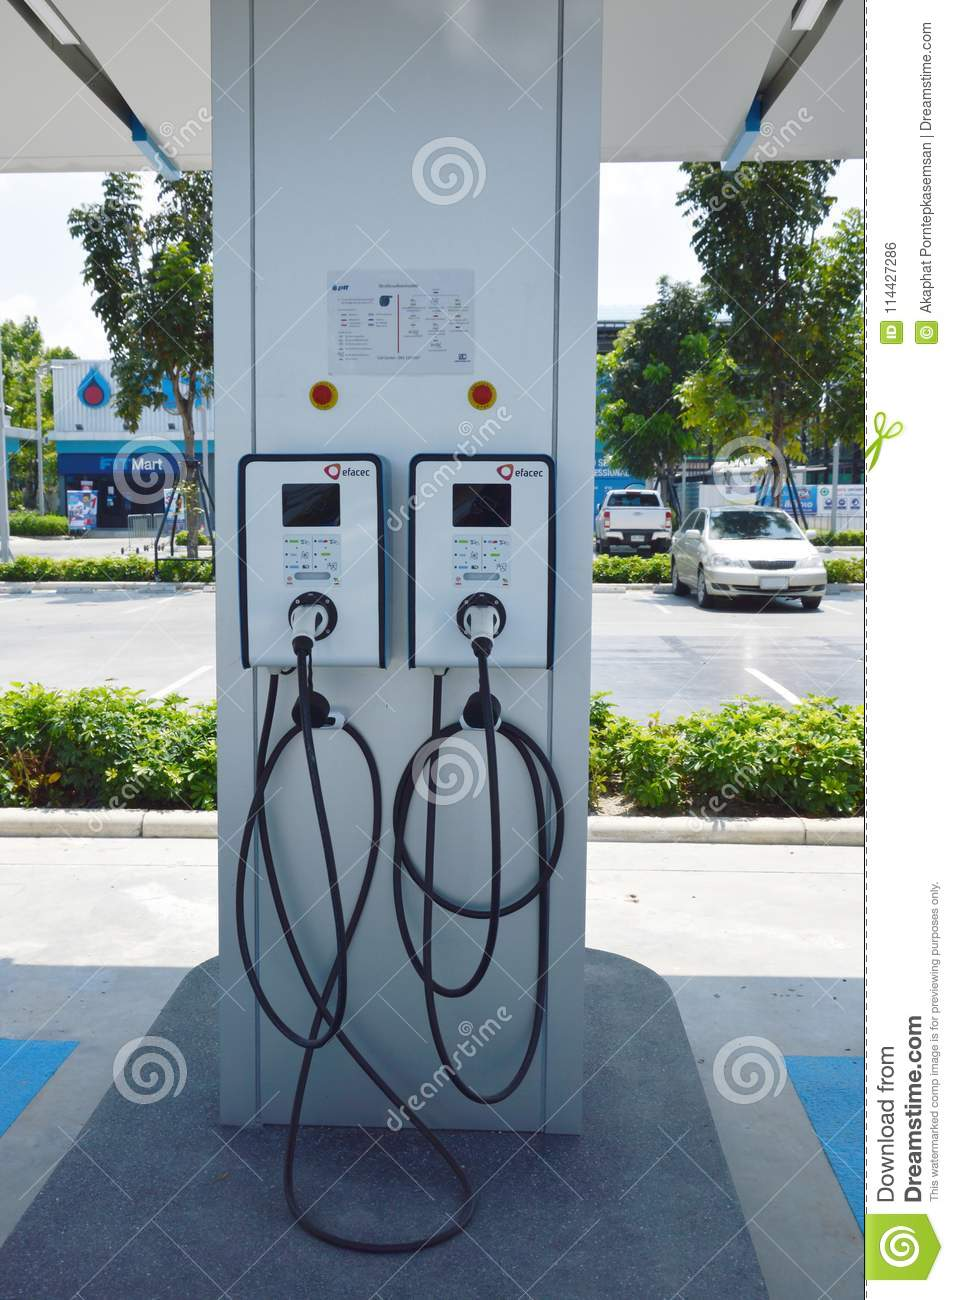 Electric vehicle charger in gas station for supporting electrical car in future